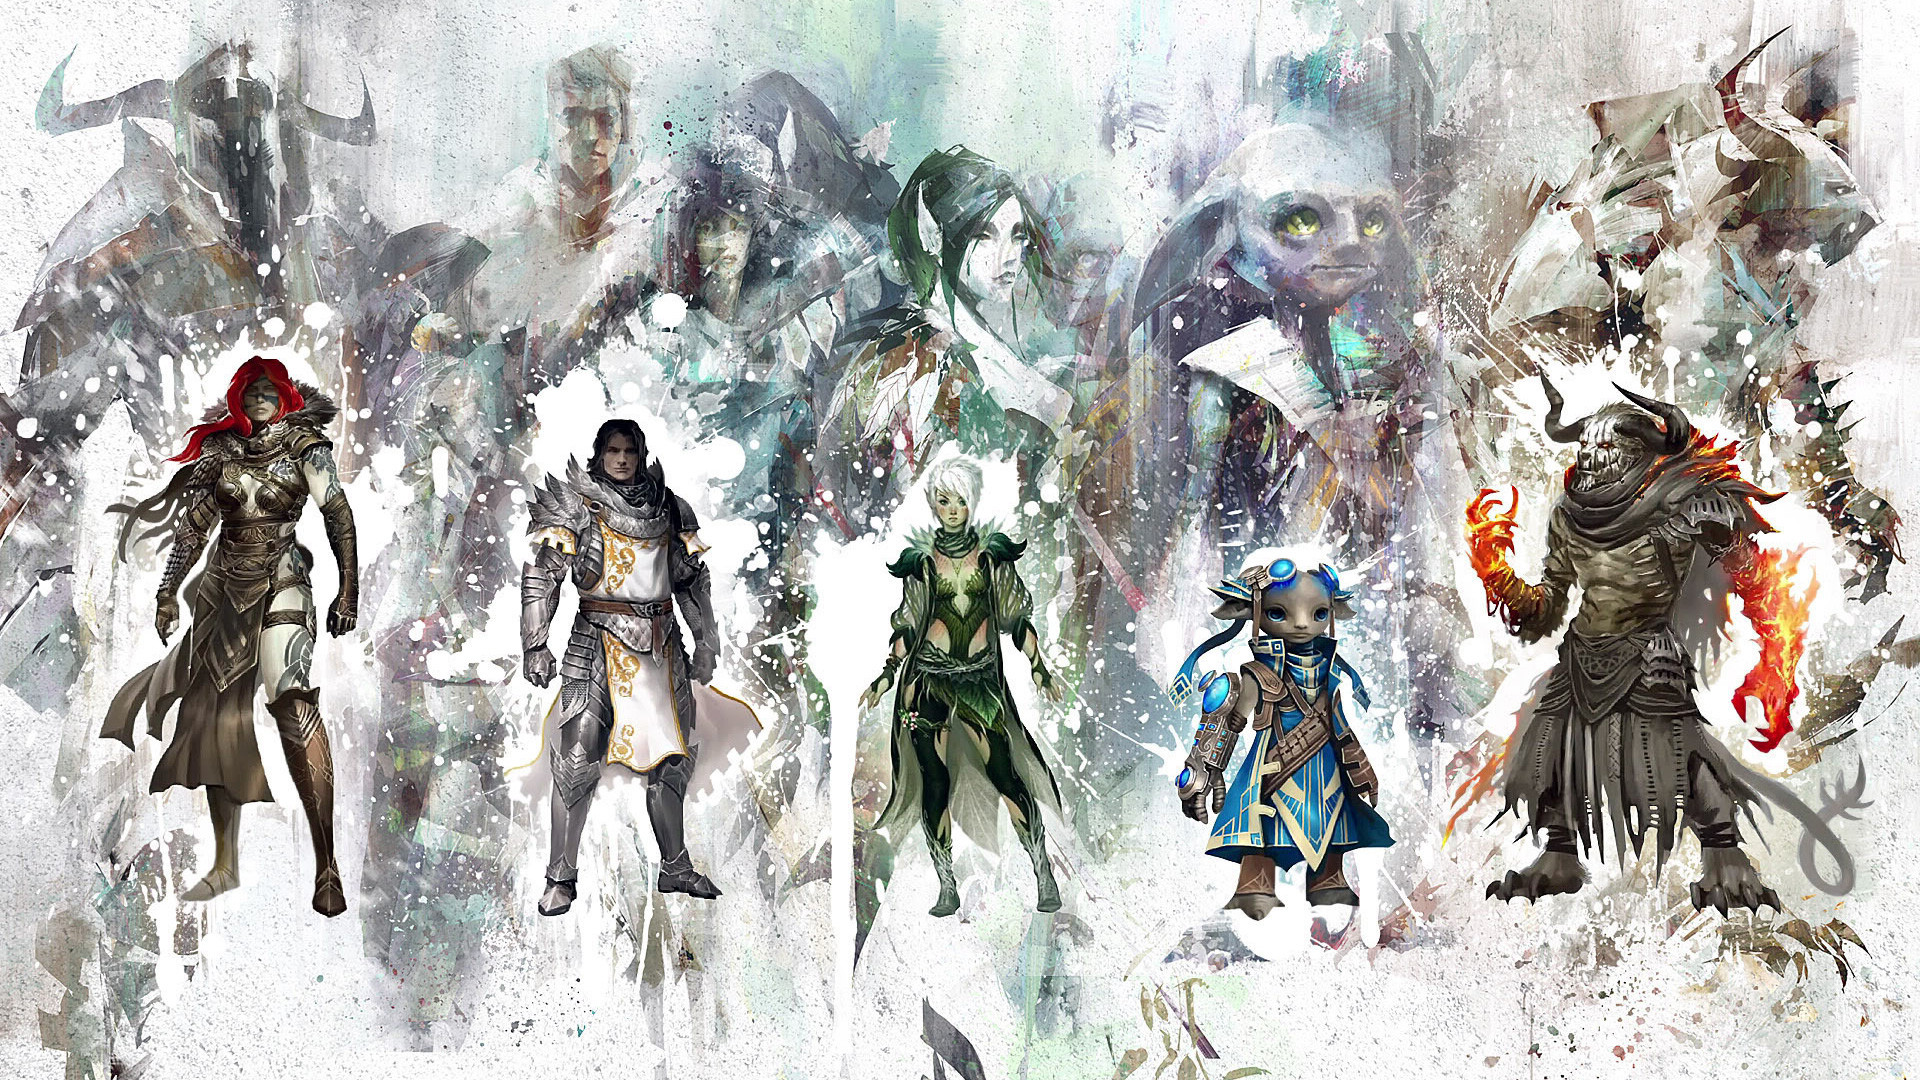 1920x1080 Free Guild Wars 2 Wallpaper in